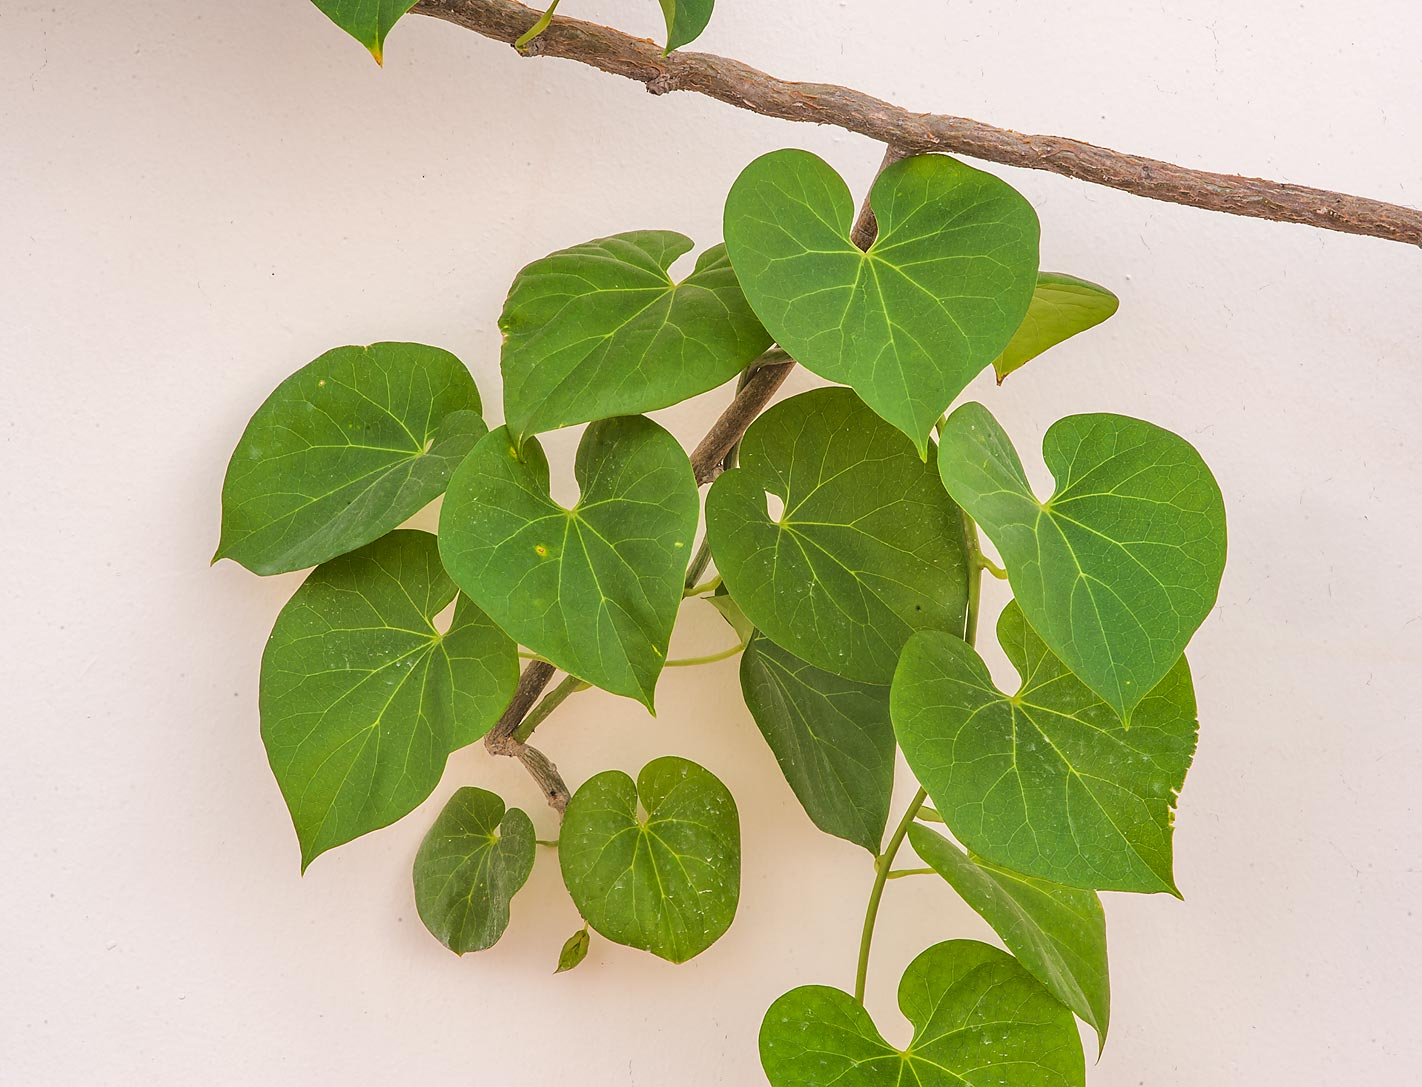 Large heart-shaped leaves of himber (Rajania...streets in Onaiza area. Doha, Qatar